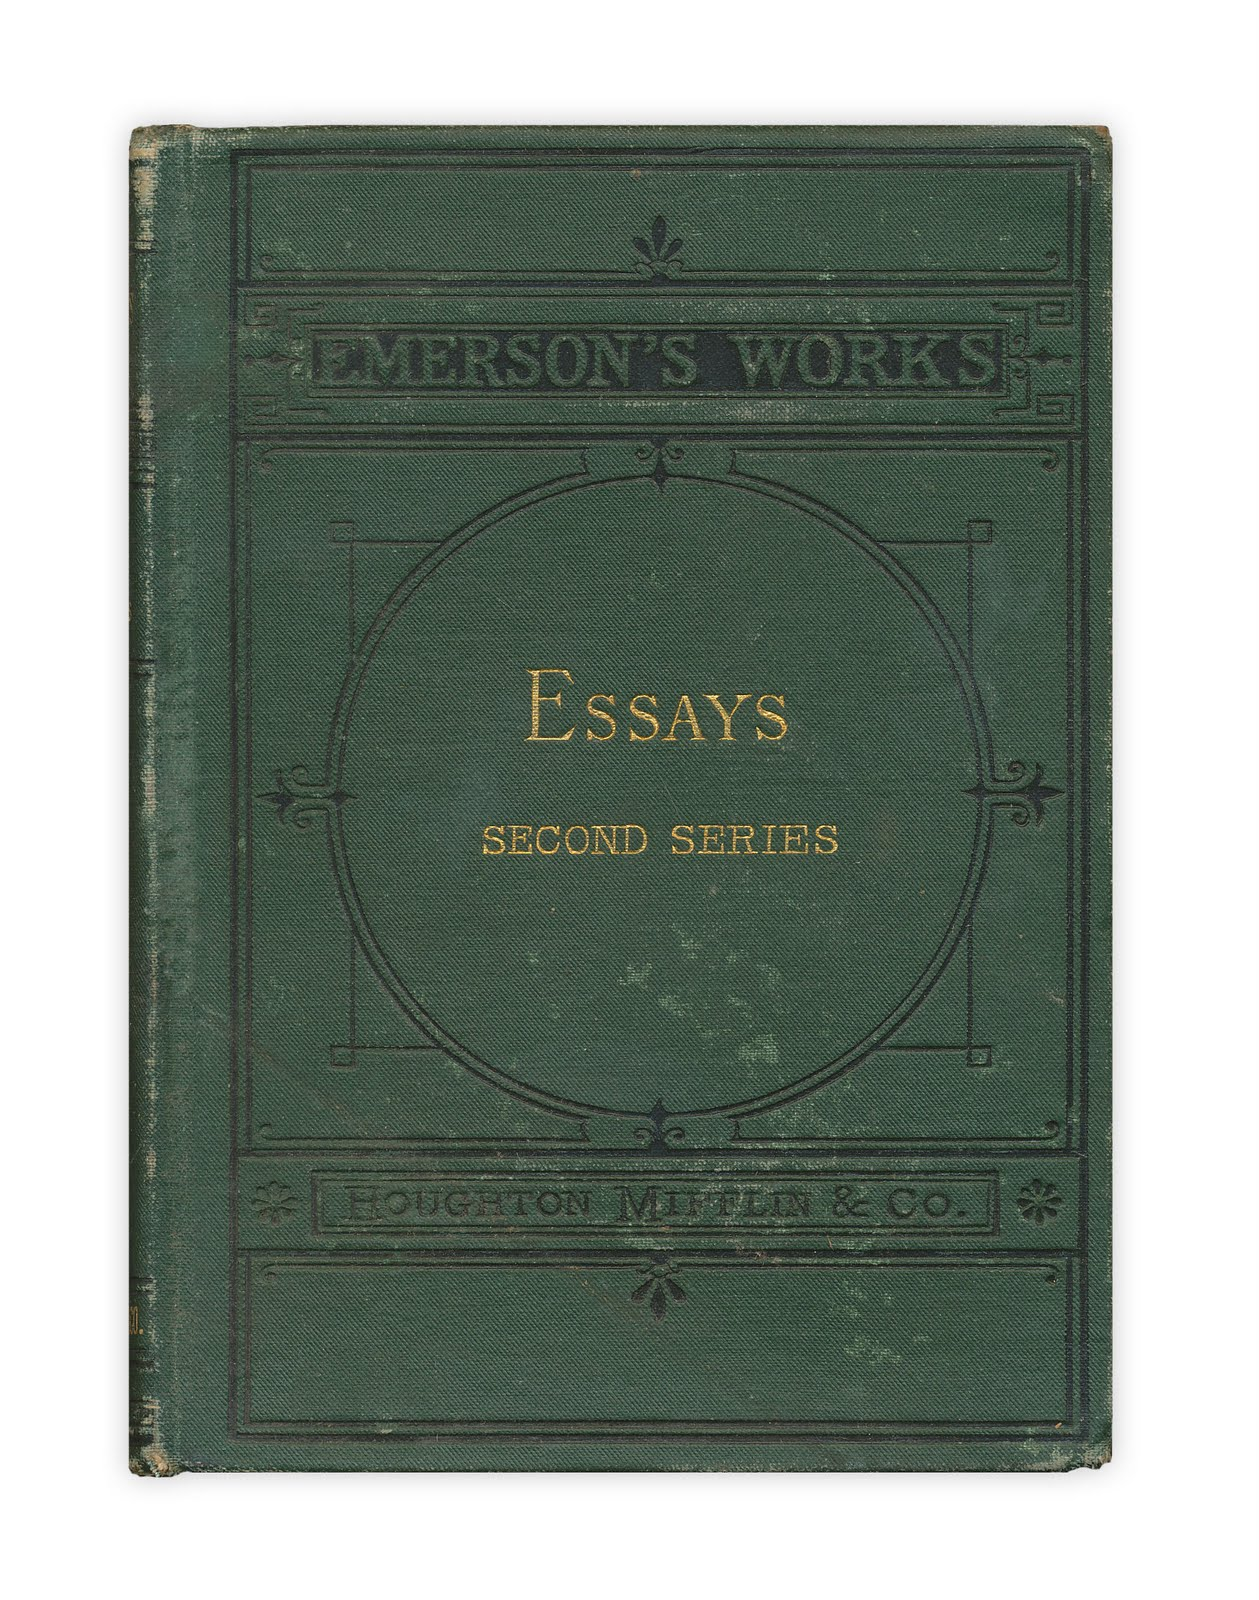 Emerson's Writings